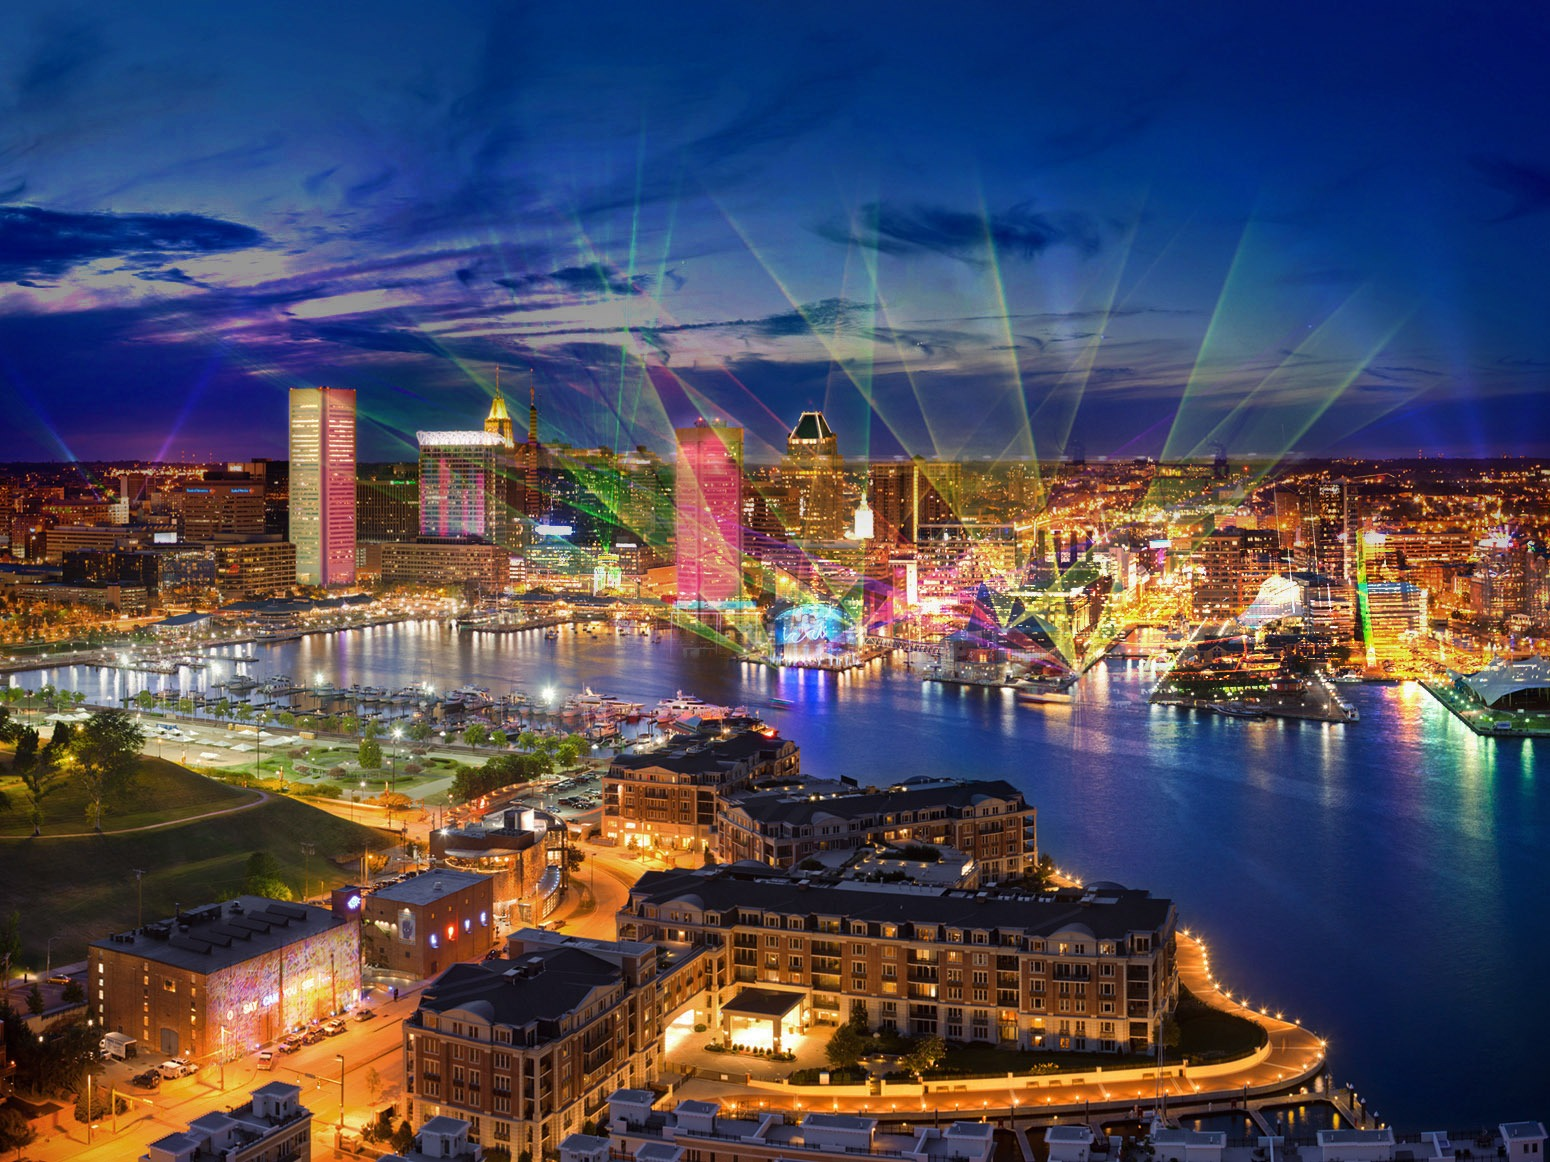 baltimore lights up with light city go jetting